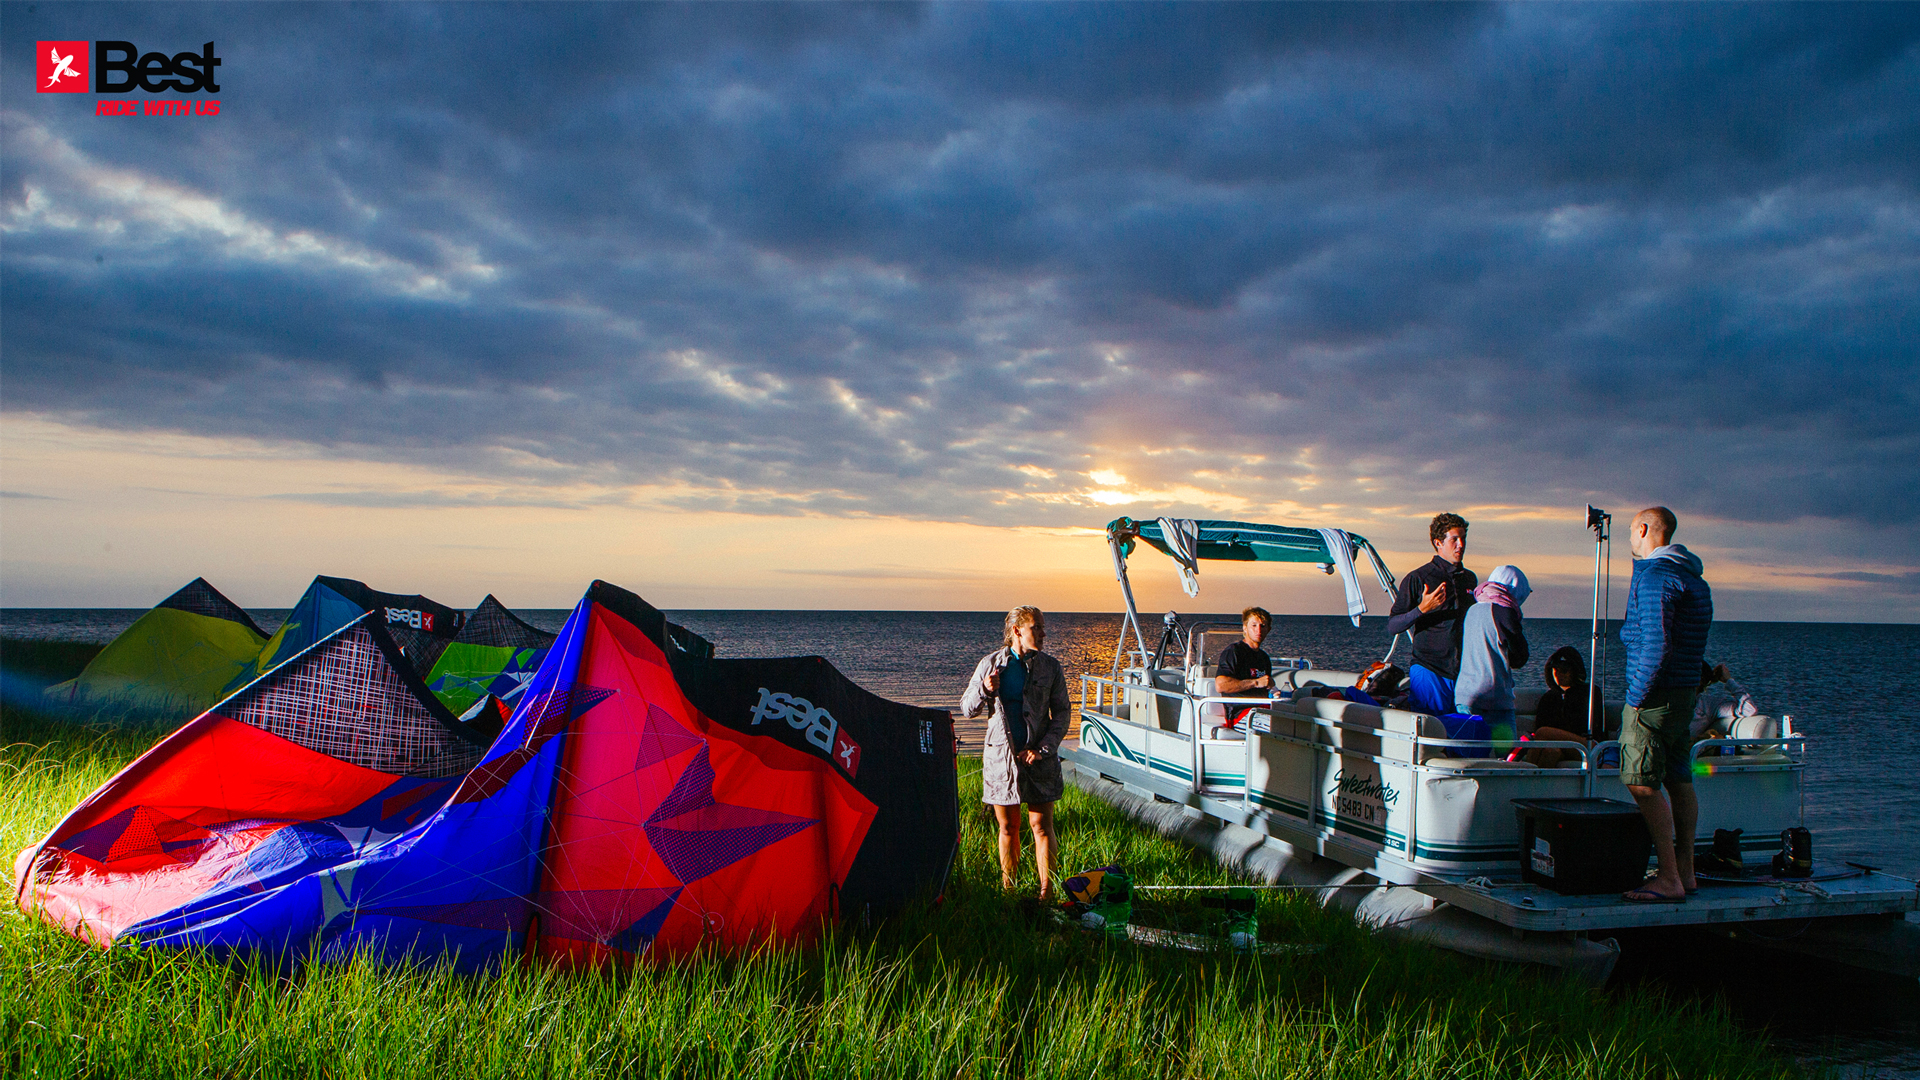 kitesurf wallpaper image - The Best kiteboarding crew chilling out at Cape Hatteras after a day on the water - in resolution: High Definition - HD 16:9 1920 X 1080